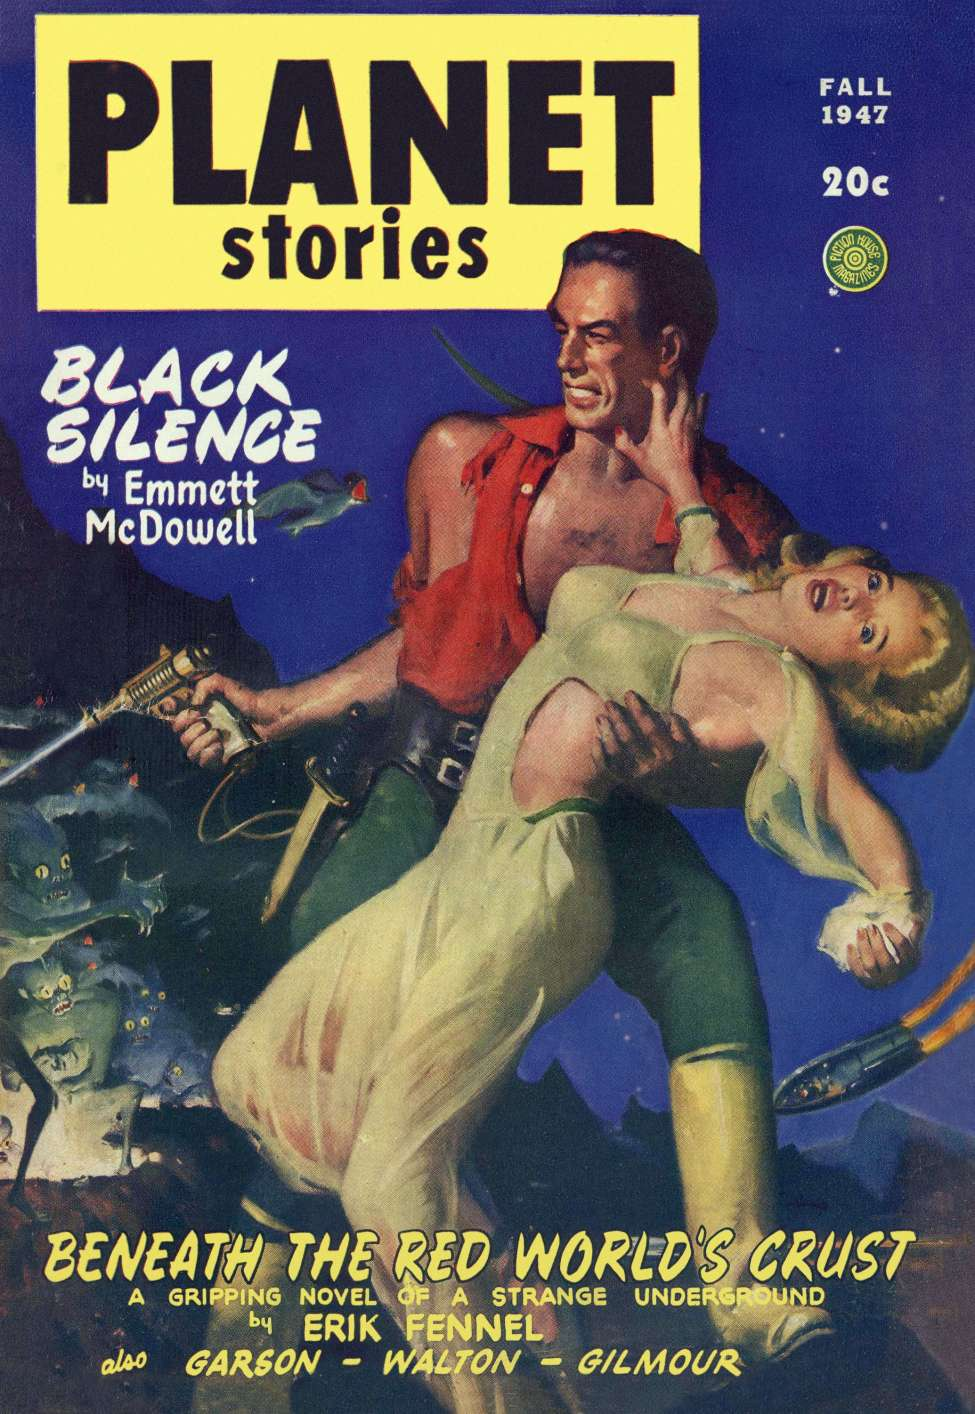 Comic Book Cover For Planet Stories v03 08 - Black Silence - Emmett McDowell